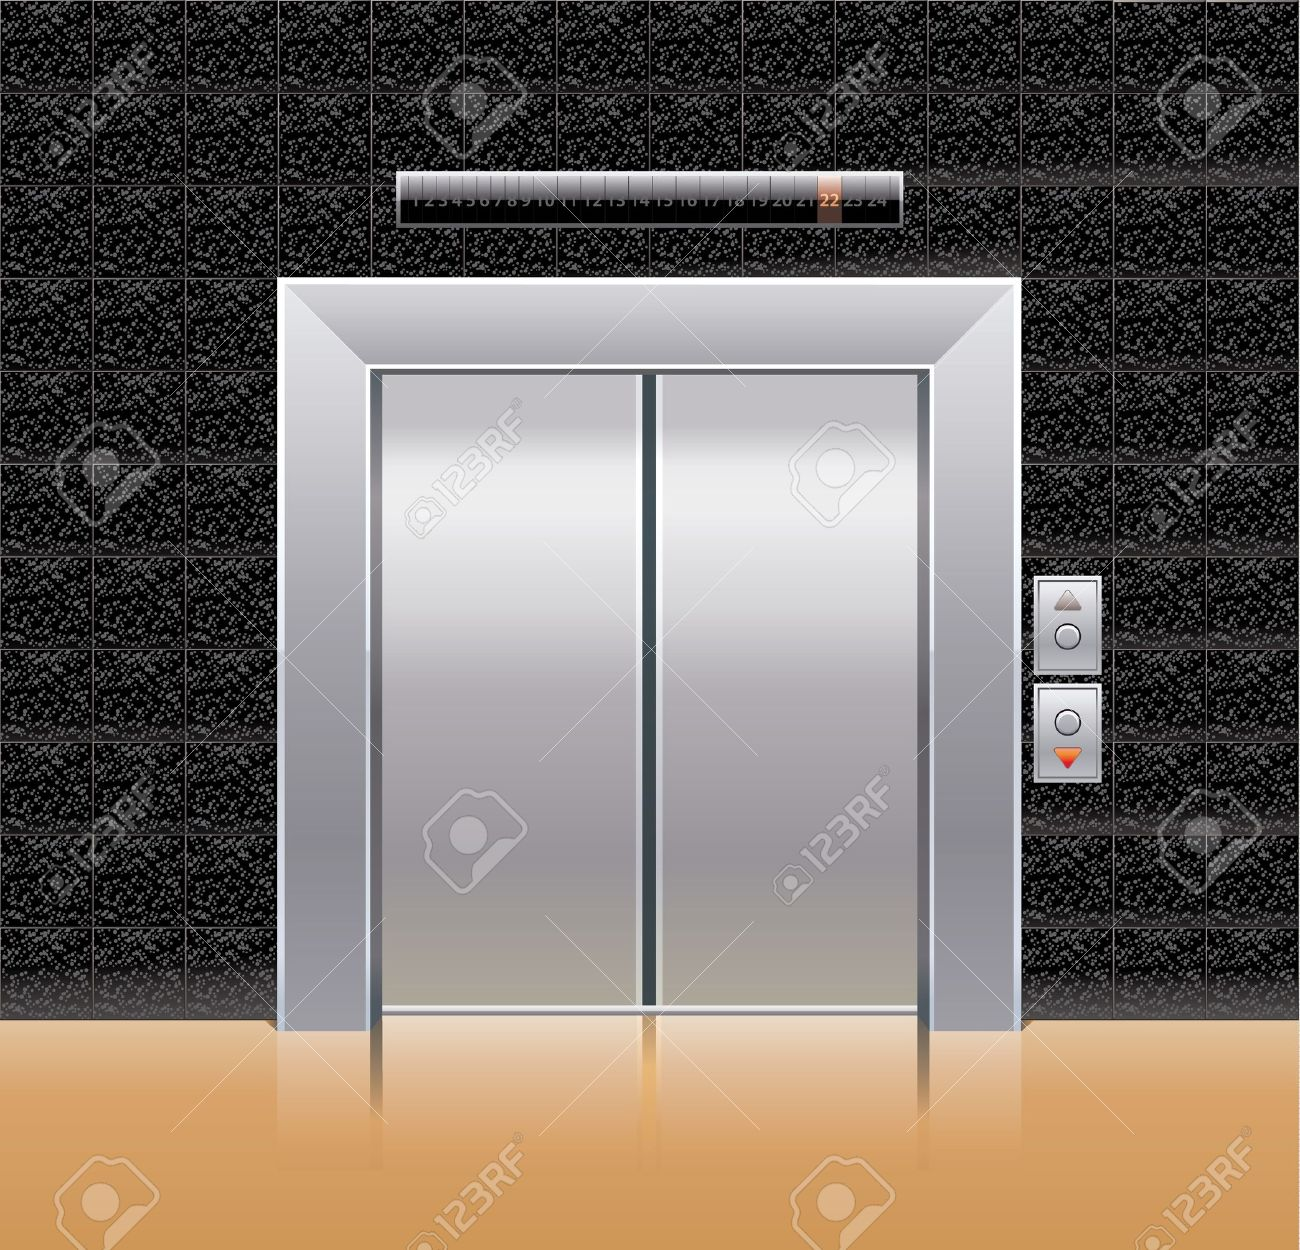 Lifts clipart.